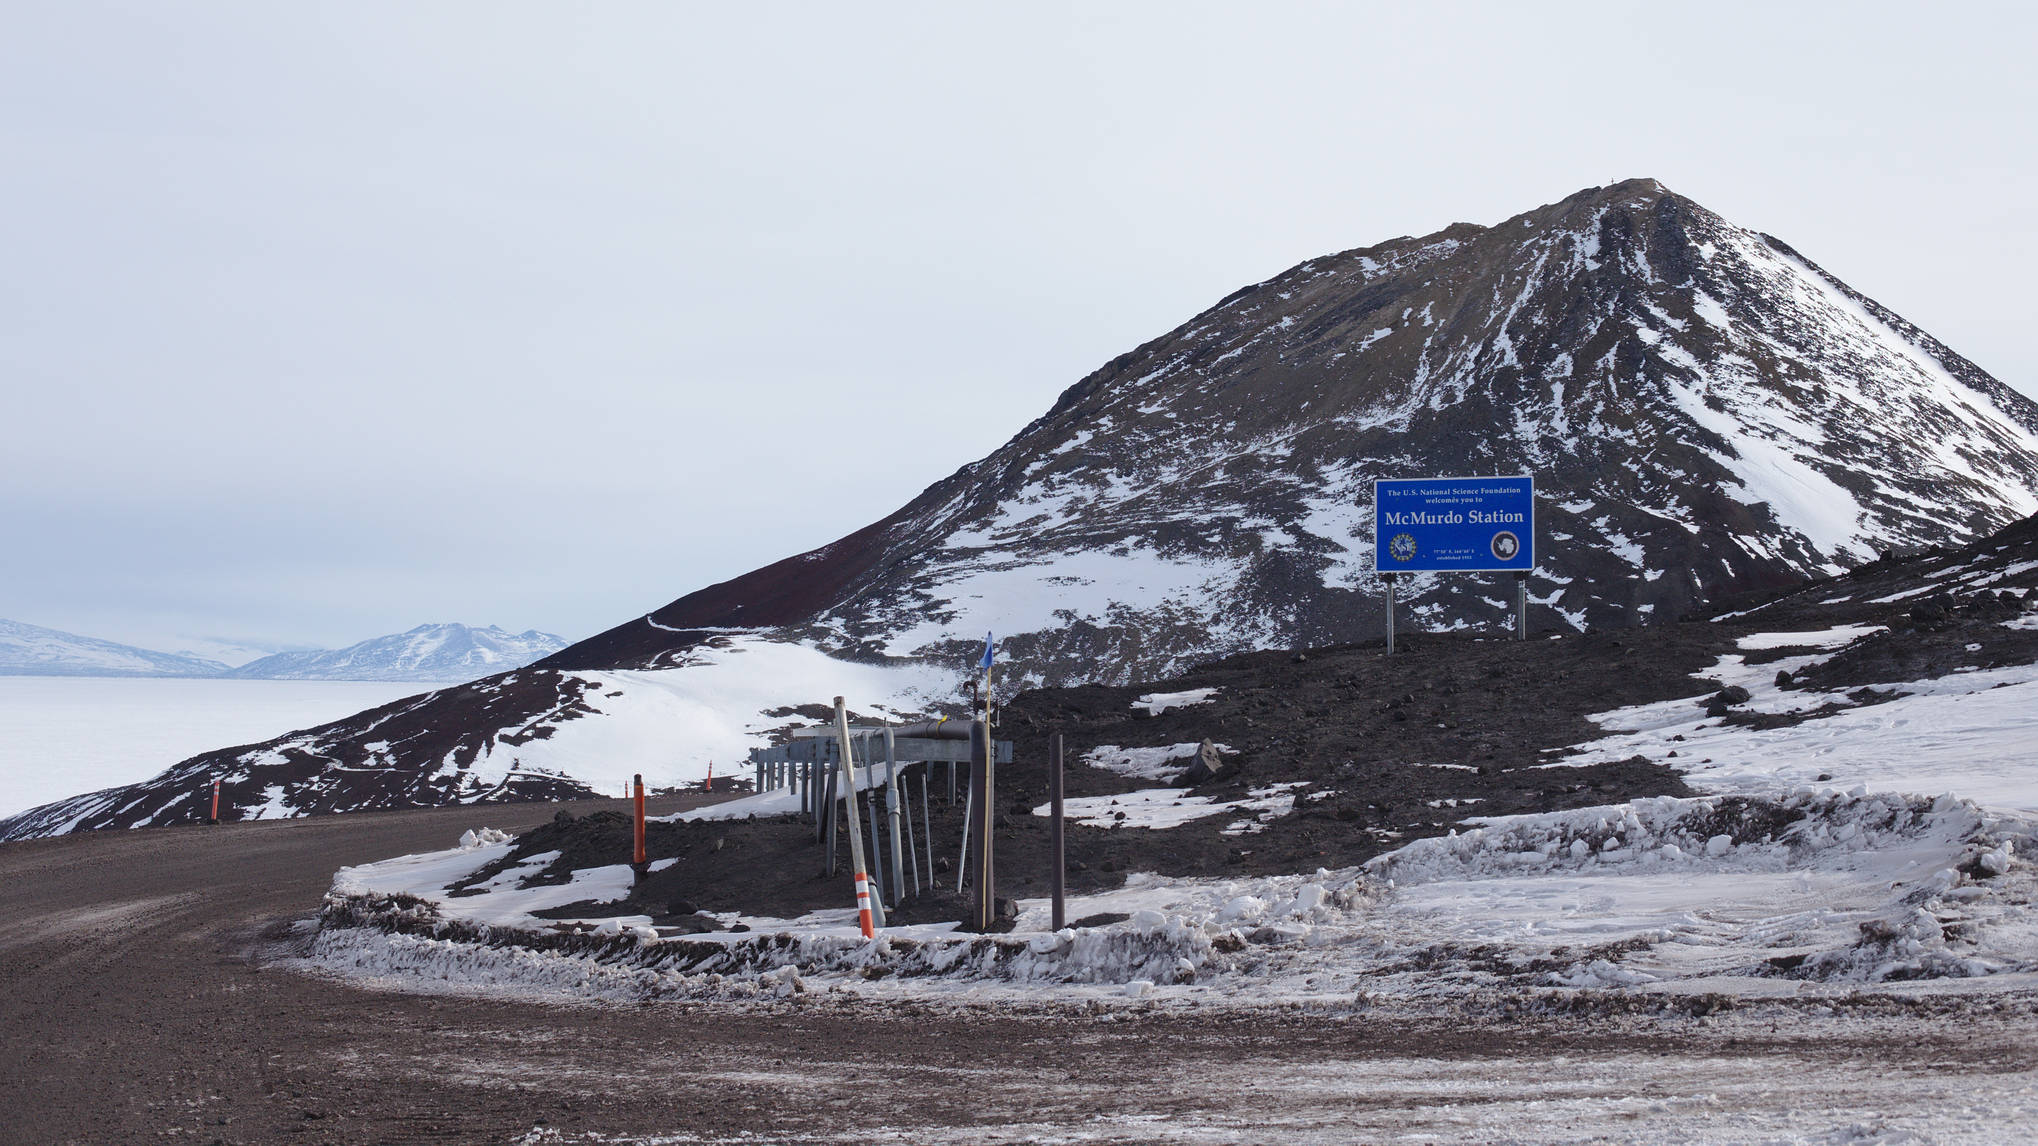 One step closer to home - the road to McMurdo